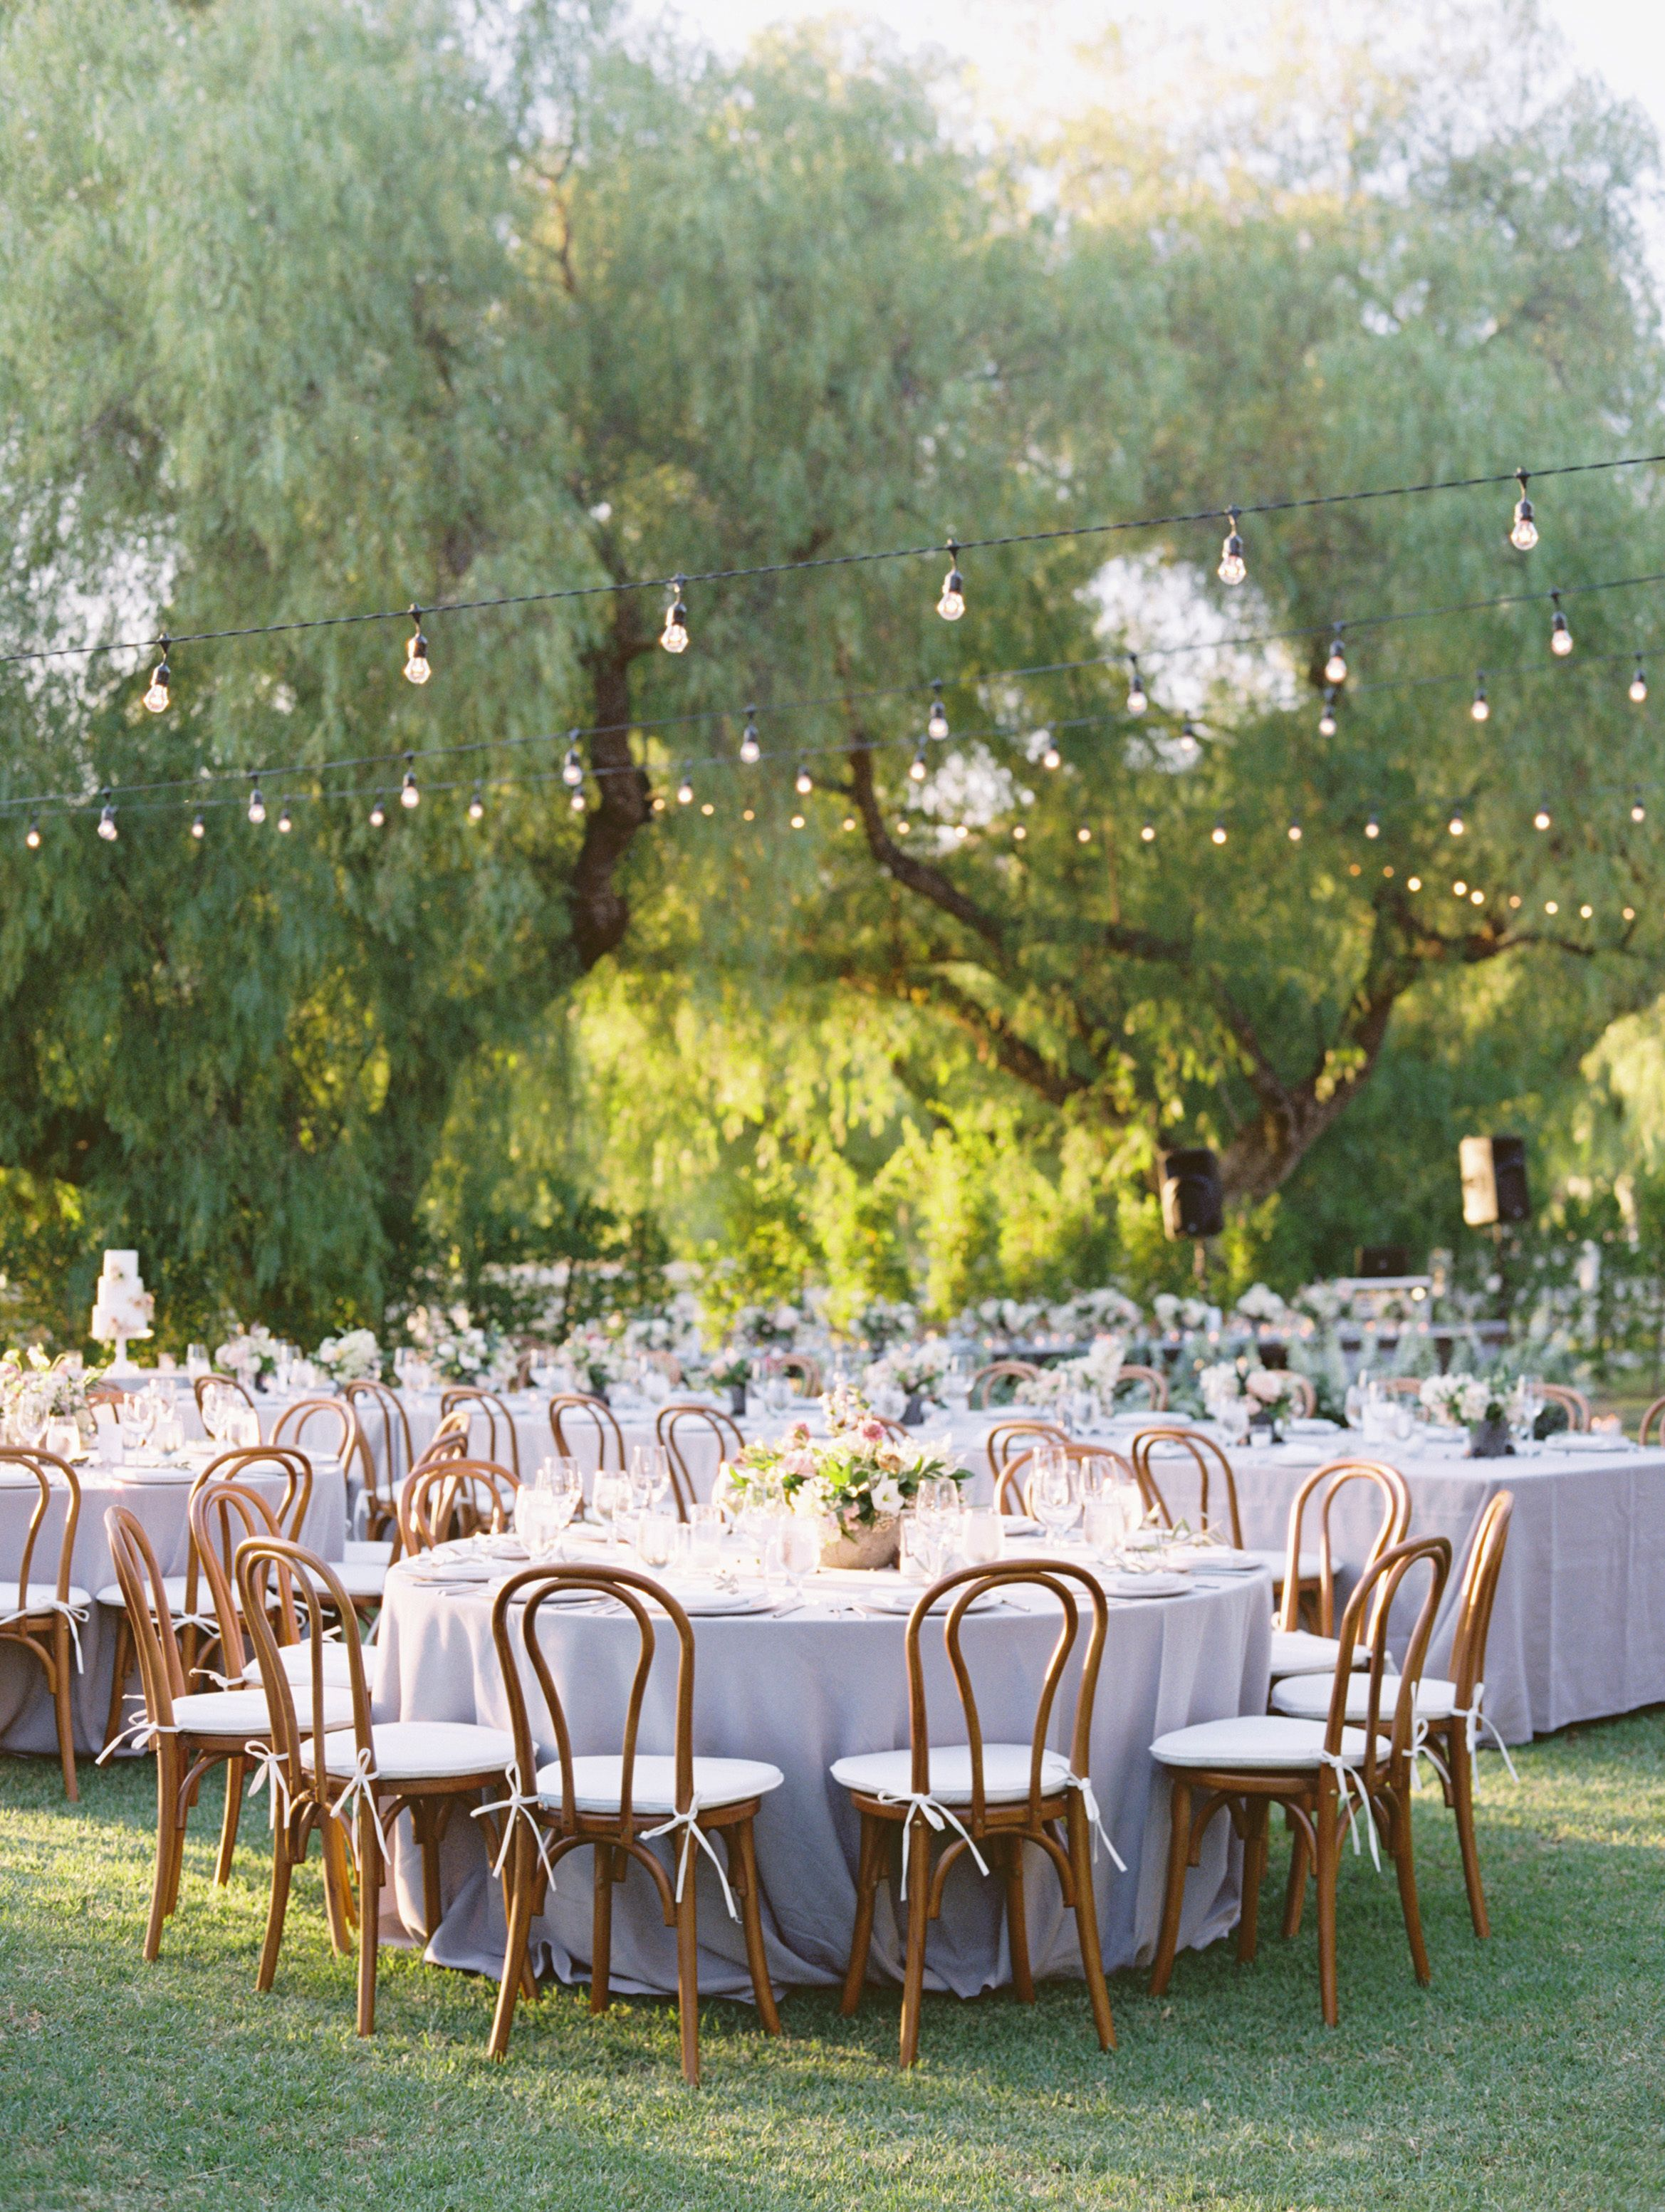 What Garden Wedding Dreams Are Made of at Hummingbird Nest